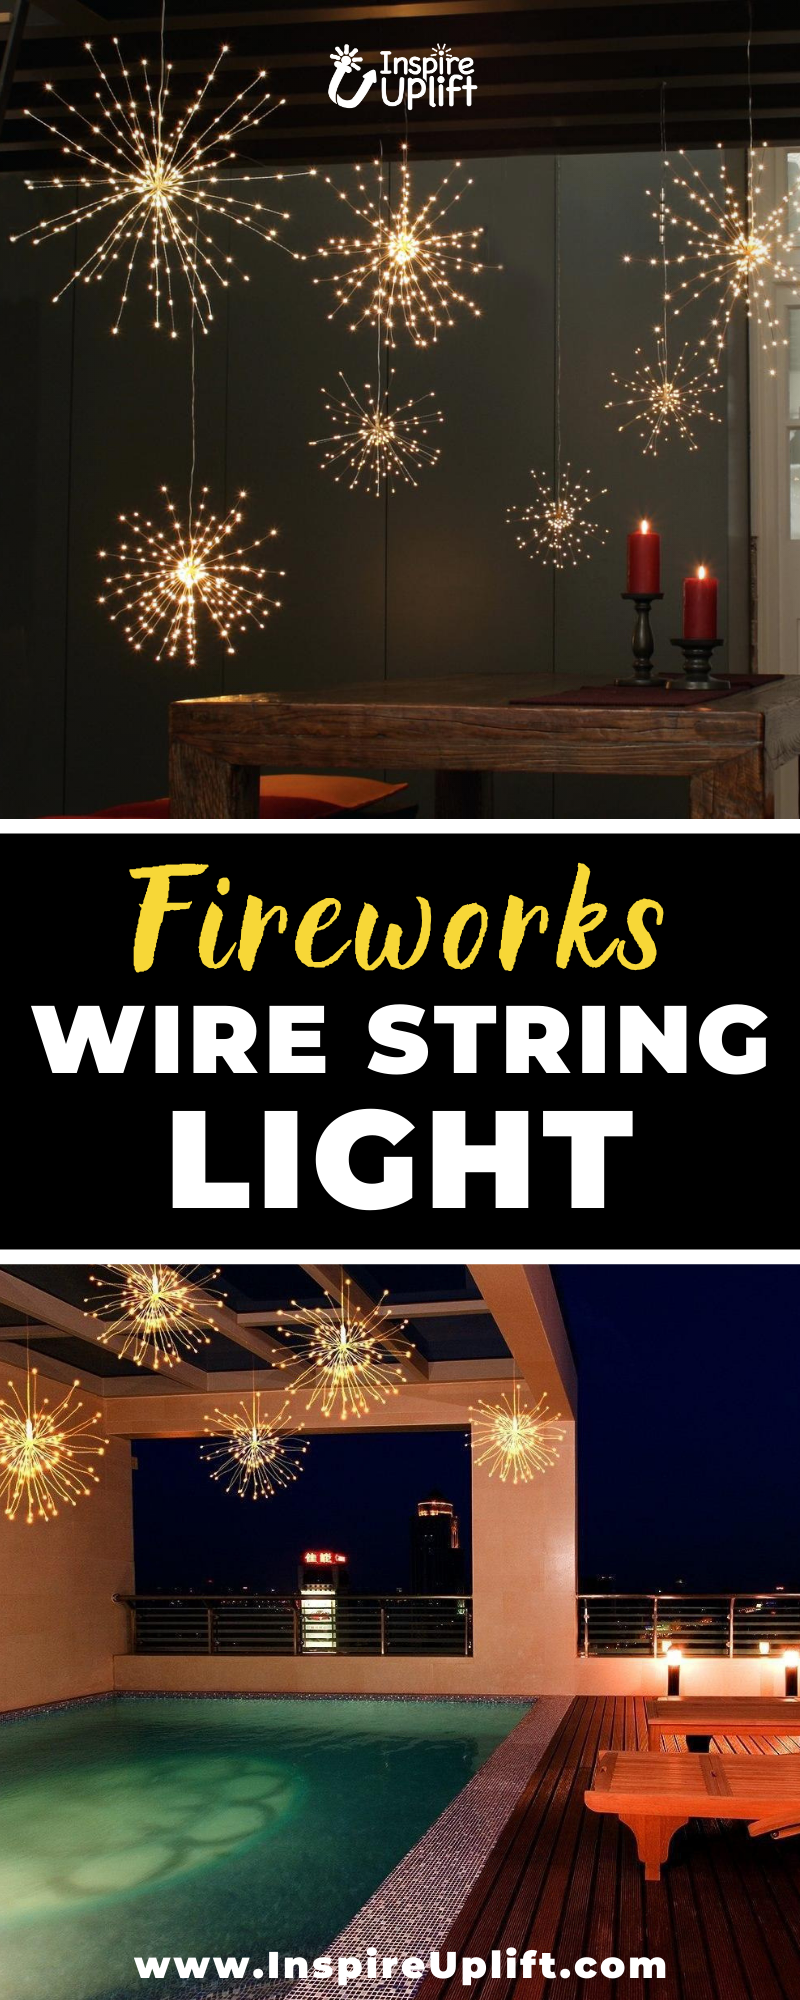 Fireworks Wire String Light 😍 InspireUplift.com